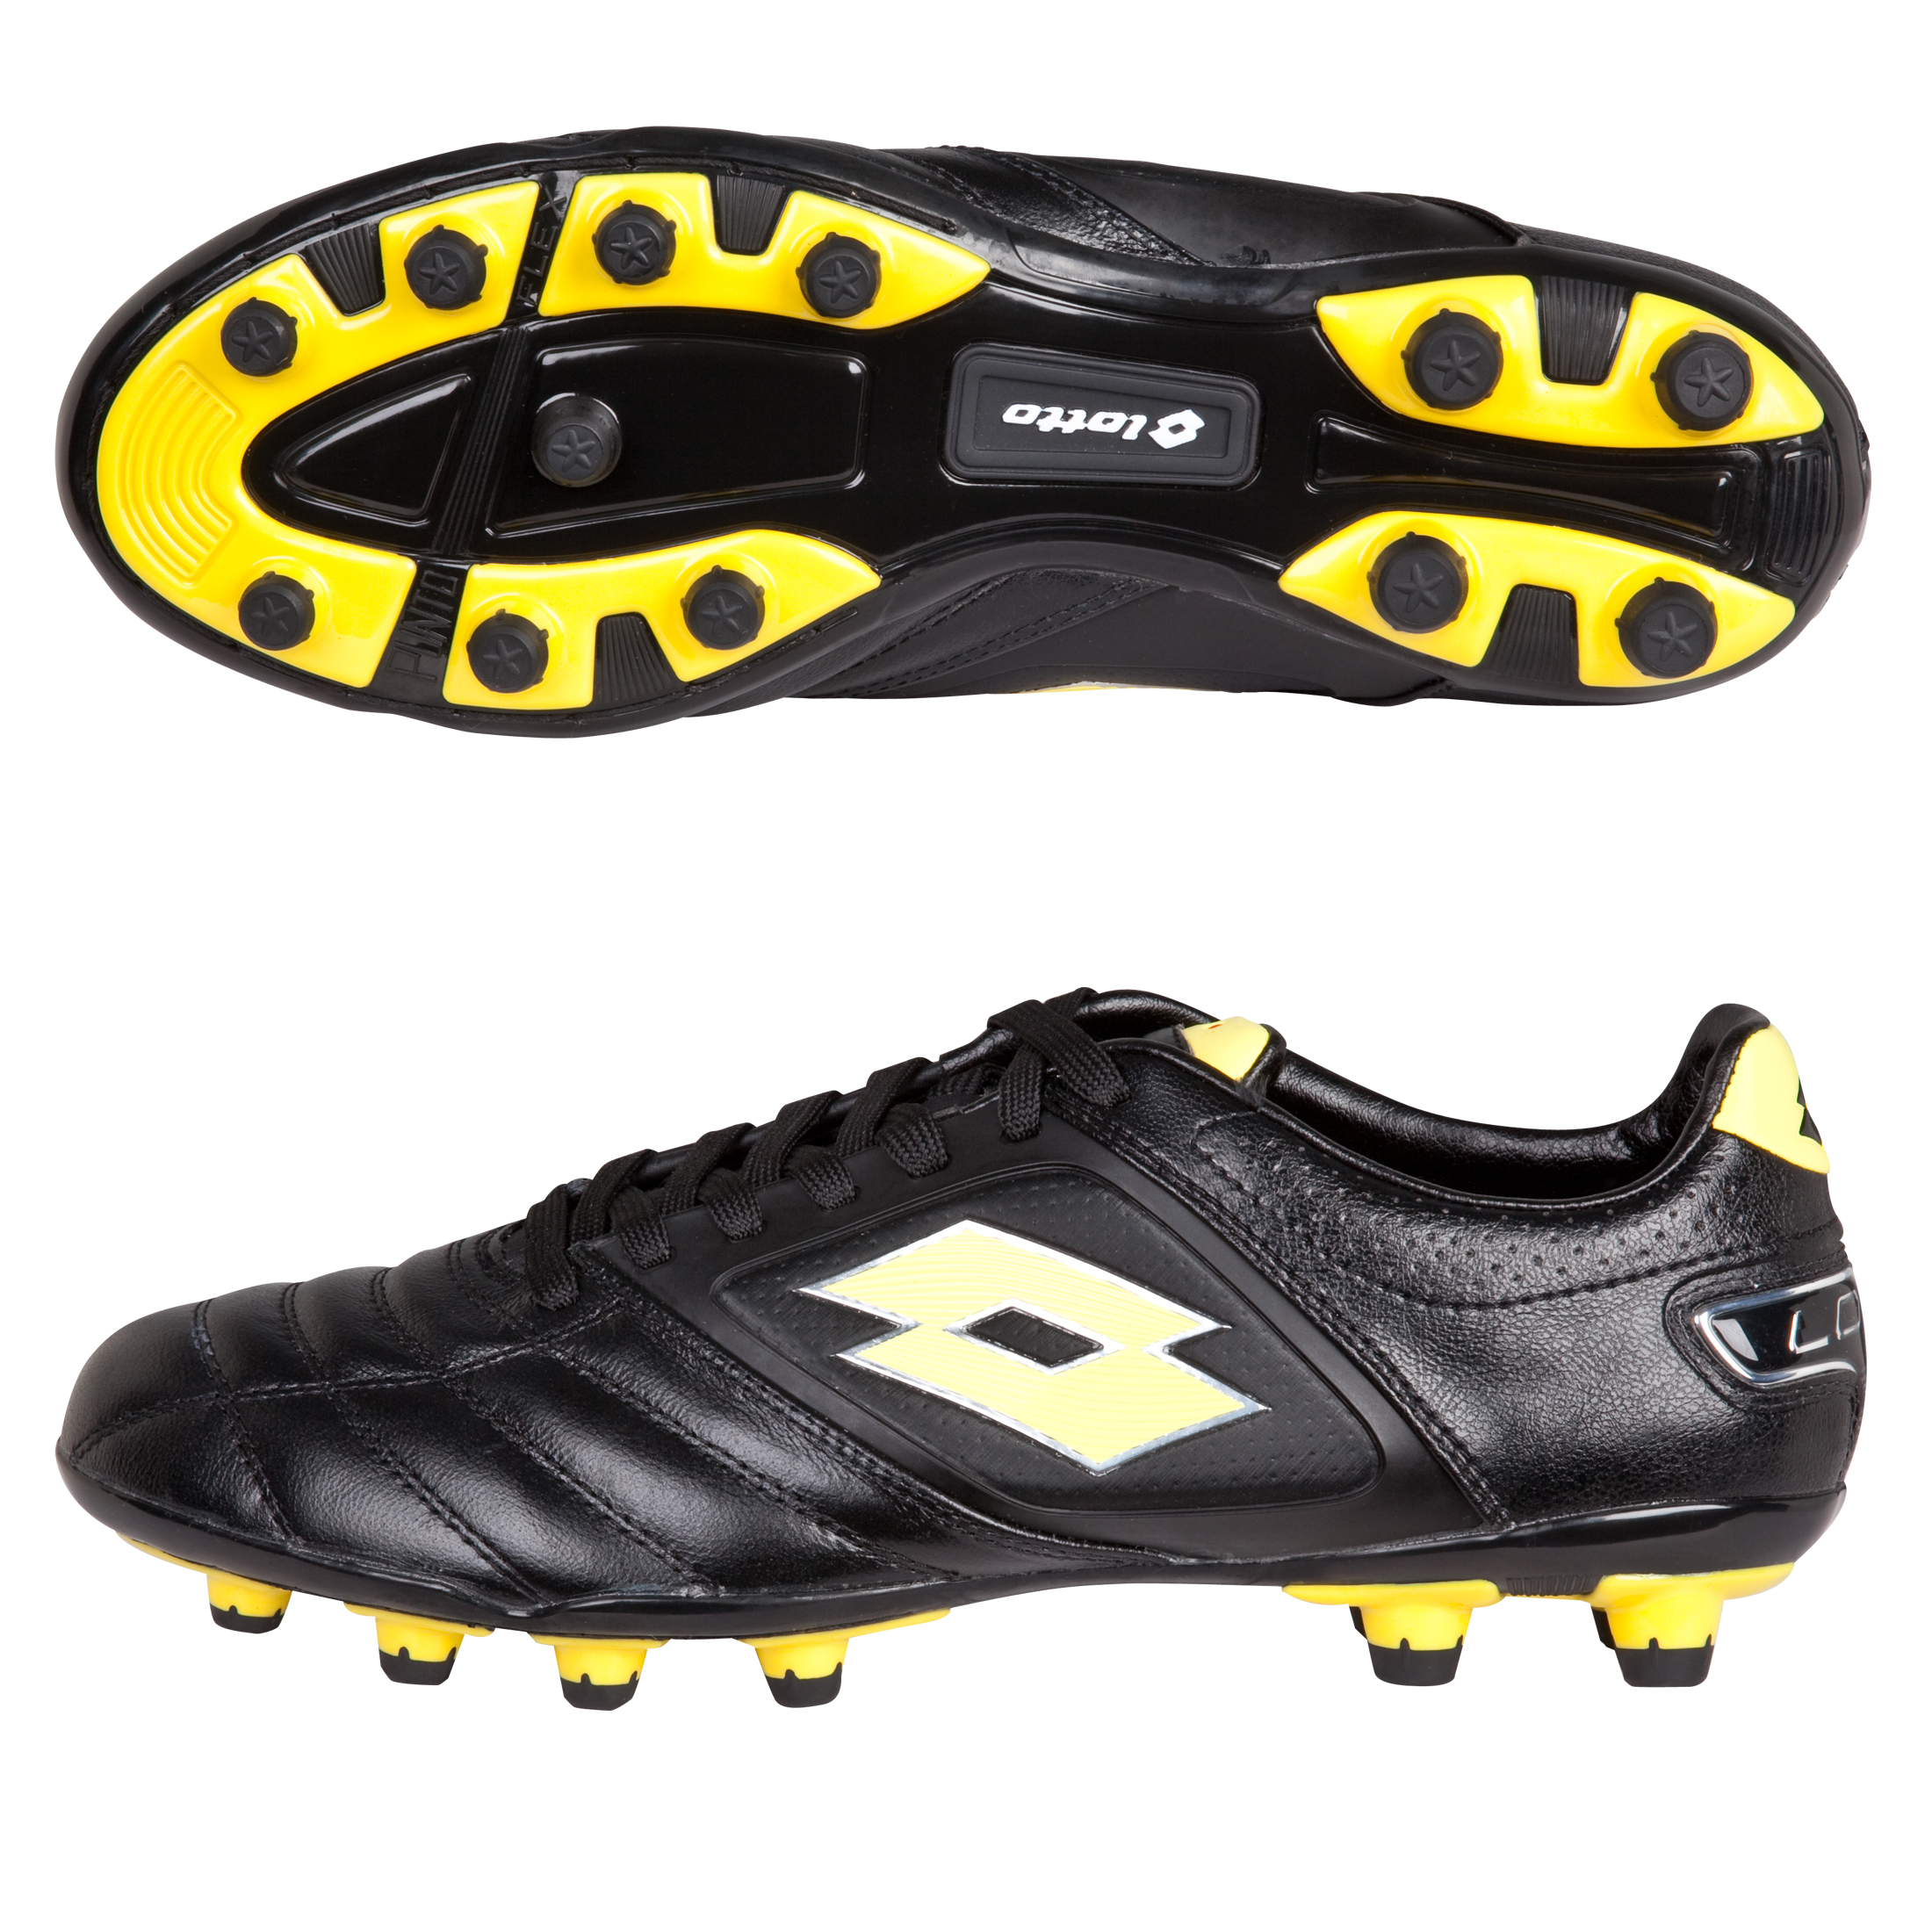 Lotto Stadio Potenza Firm Ground Football Boots - Black/Yellow Fluo